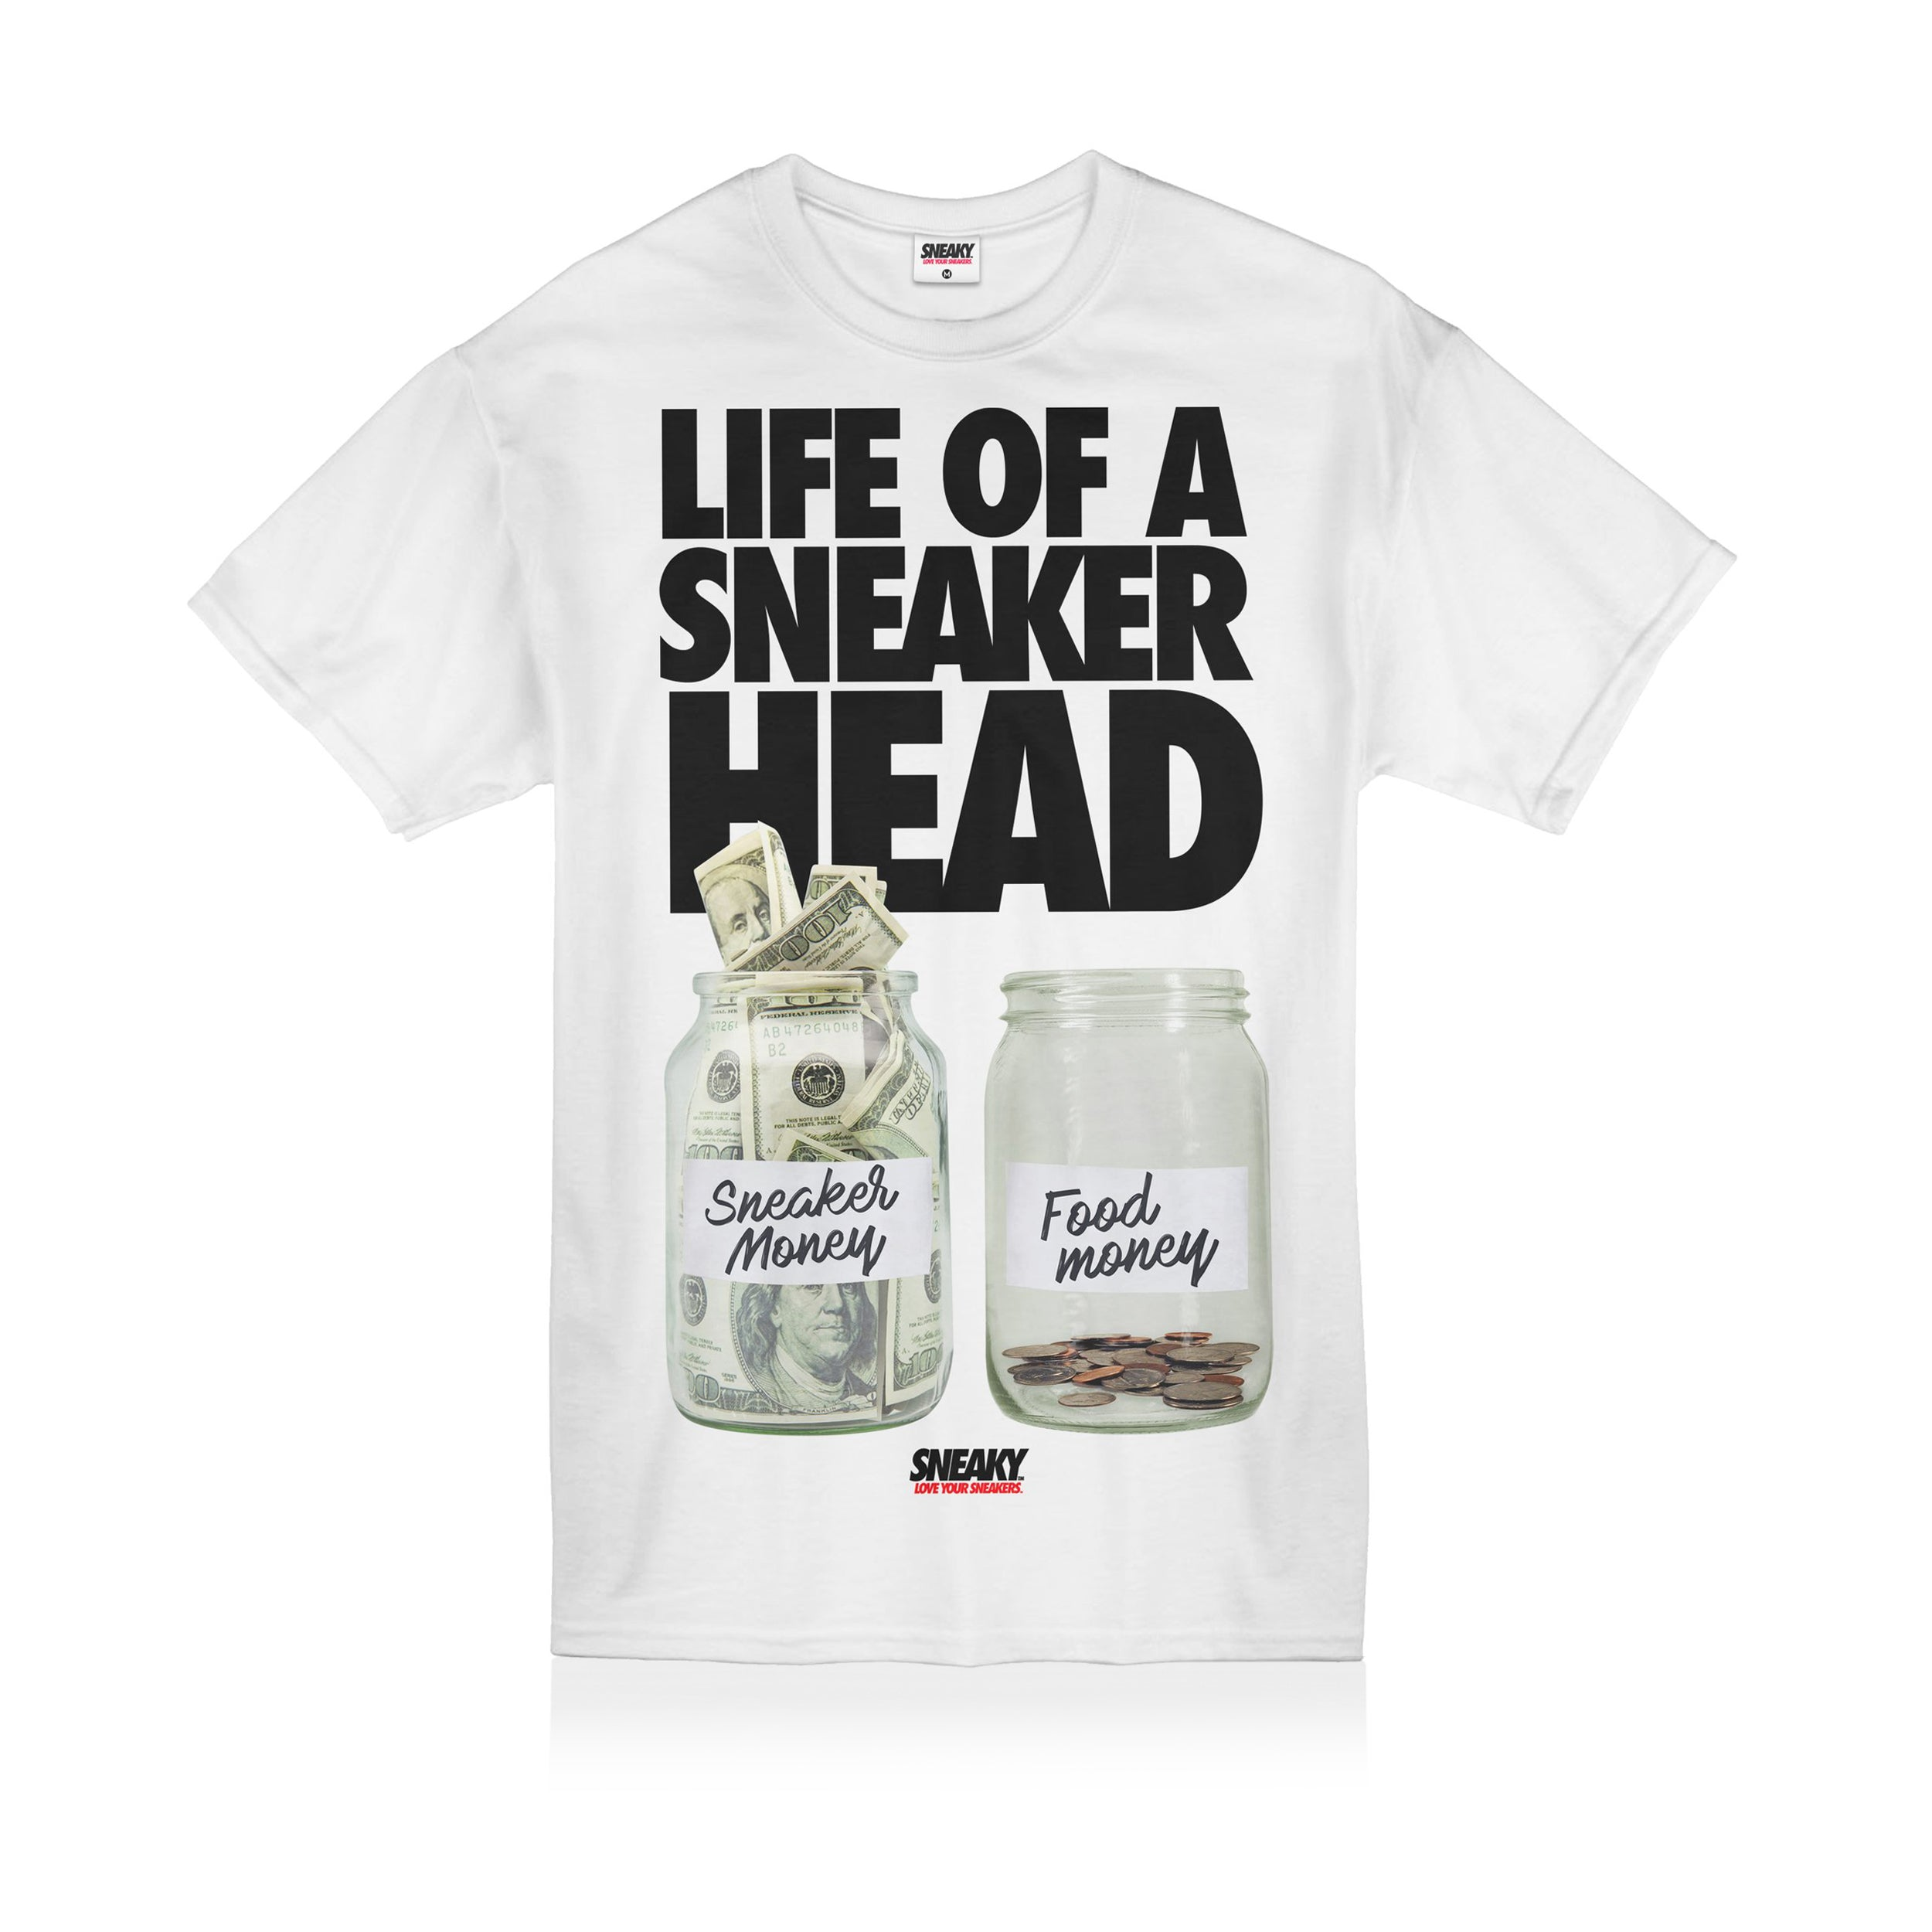 Sneaky Life of a Sneakerhead Unisex Adult T-shirt White